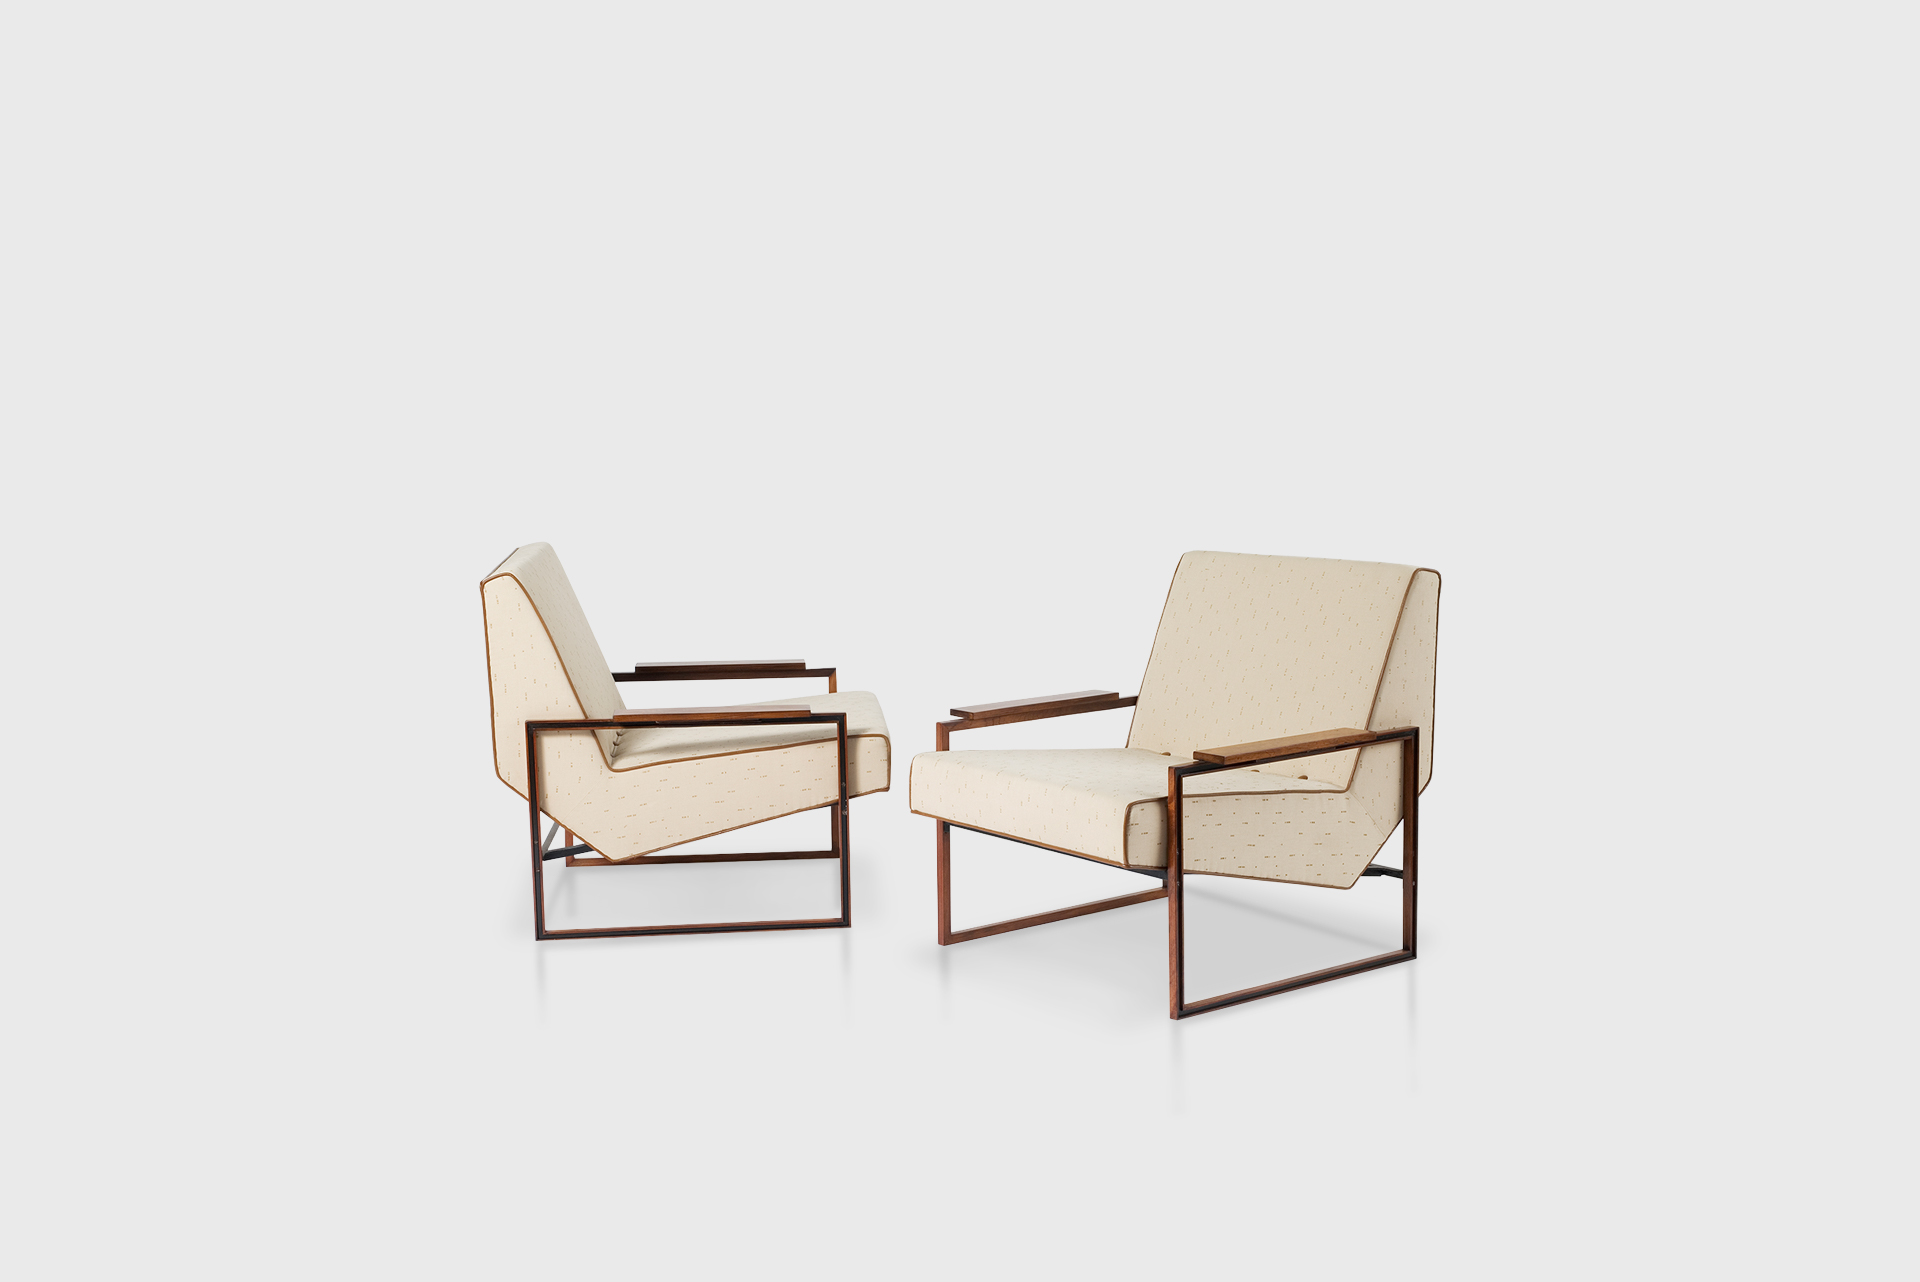 Pair of armchairs Manufactured by Lafer S.A. Ind. Com. Brazil, 1960s Jacaranda, iron, fabric upholstery